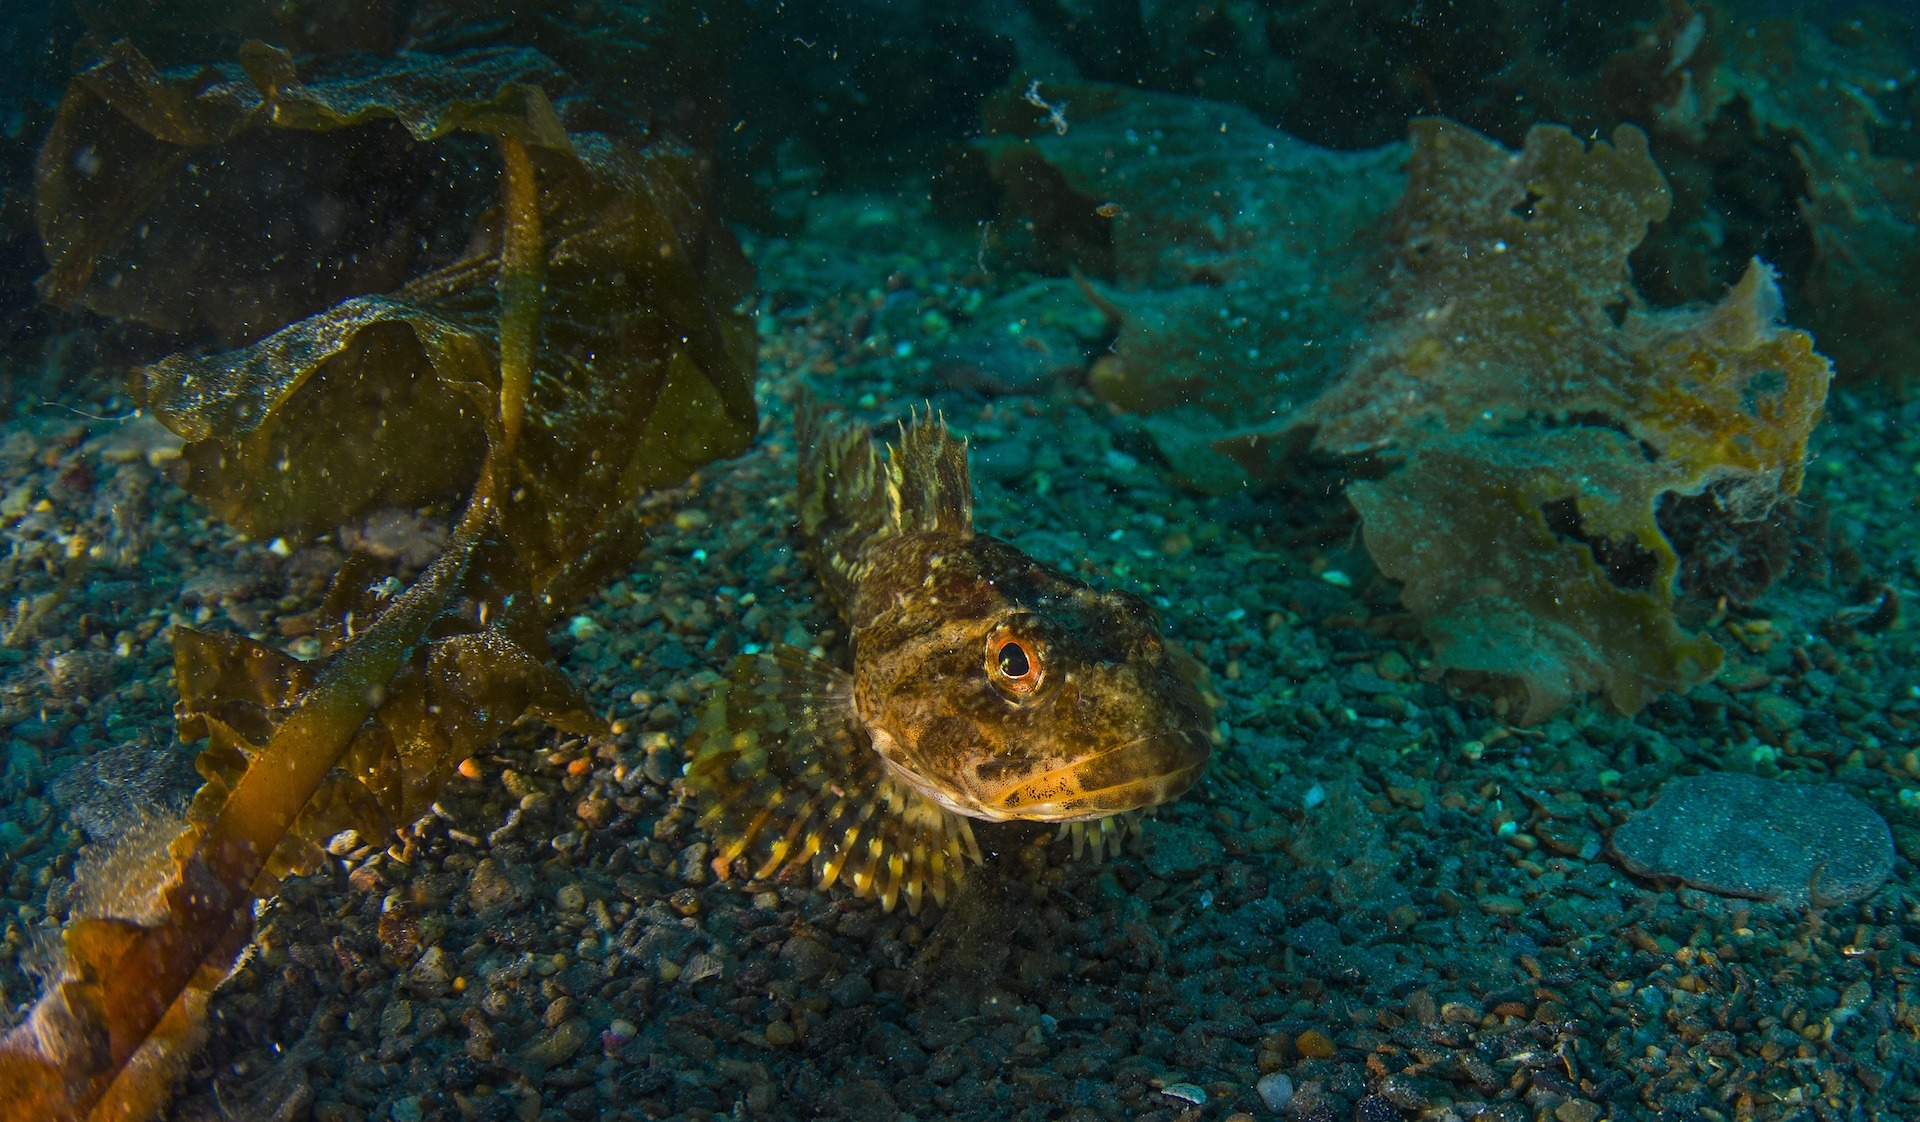 Like the ray, the Arctic sculpin too relies on camouflage, hiding among kelp forests when predators approach. This fascinating fish has the ability to tolerate temperatures below freezing, due to antifreeze proteins in its body tissue.